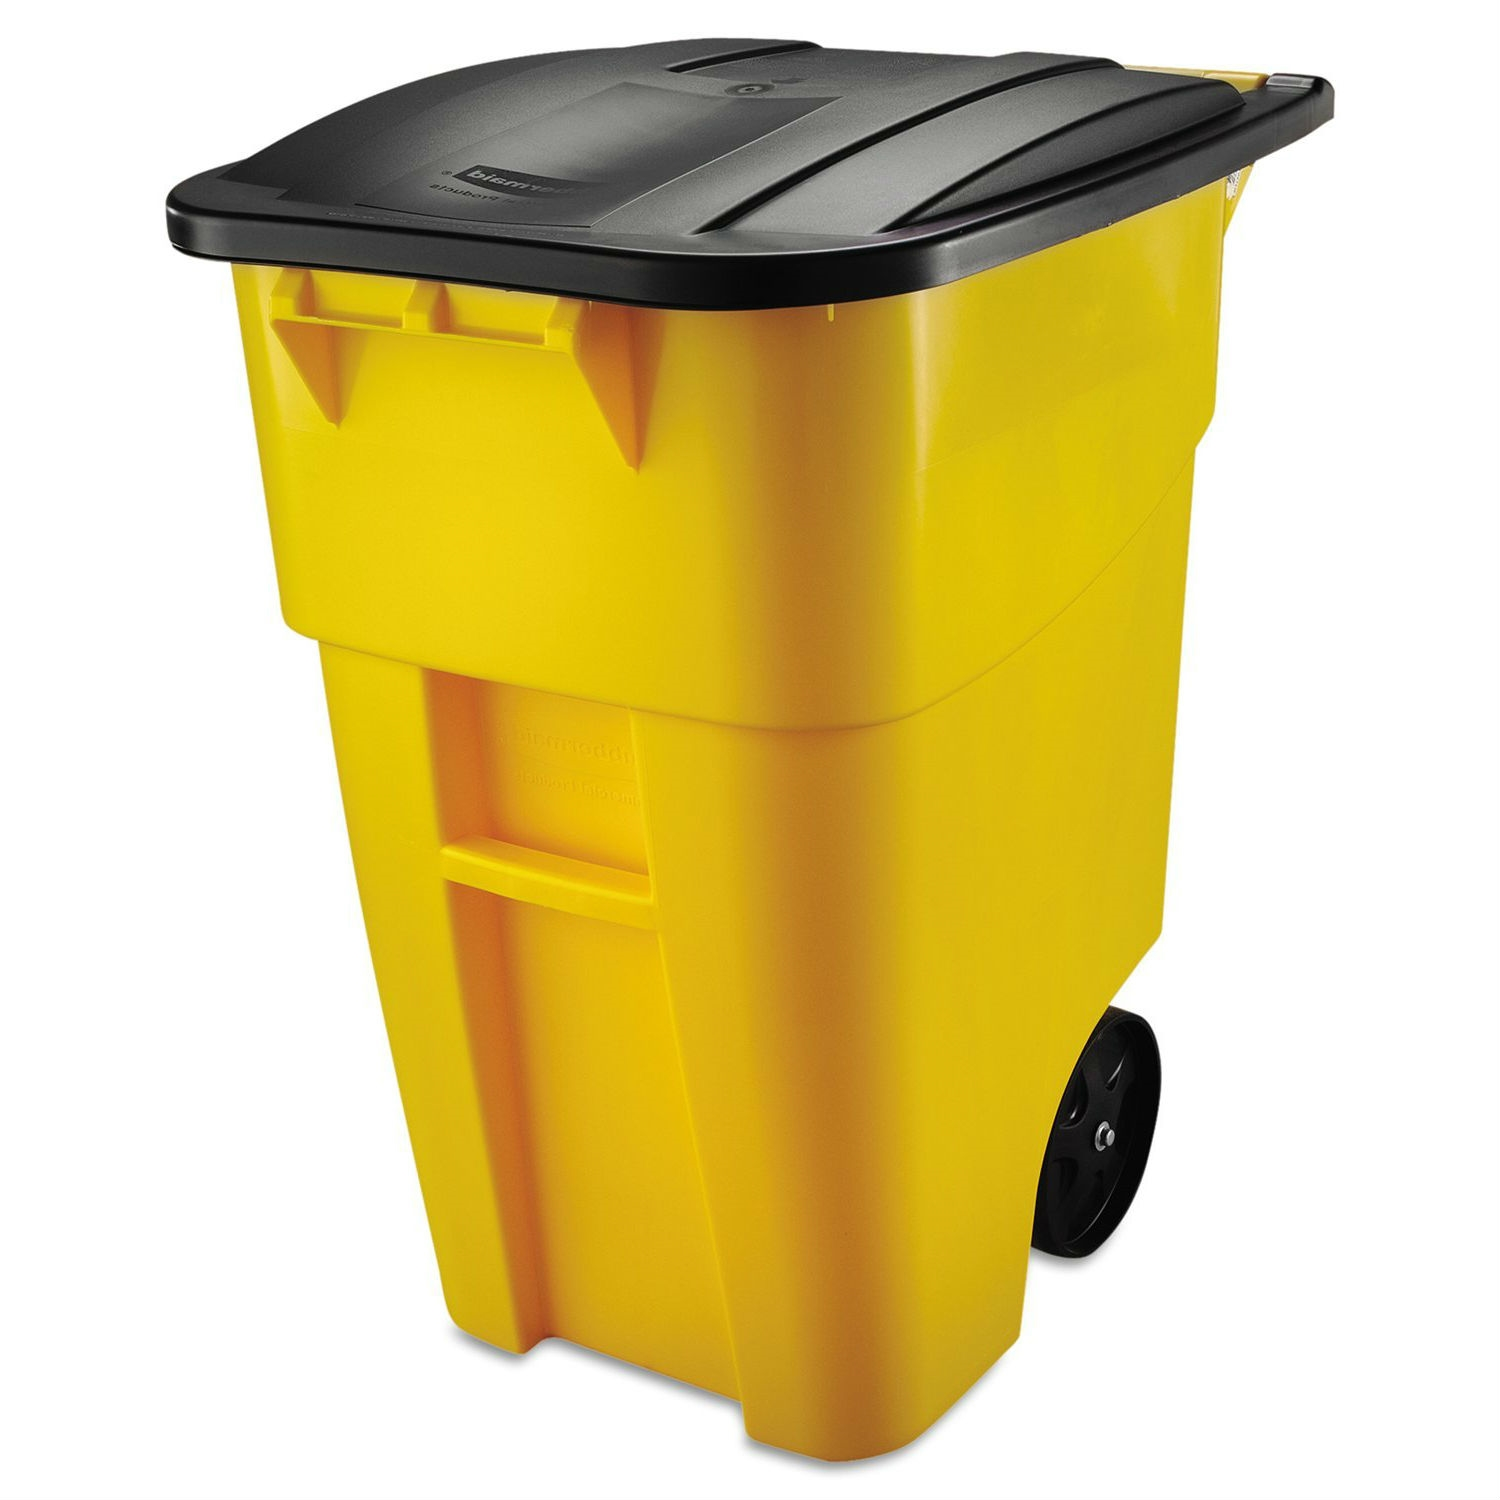 50 gallon yellow commercial heavy duty rollout trash can waste utility